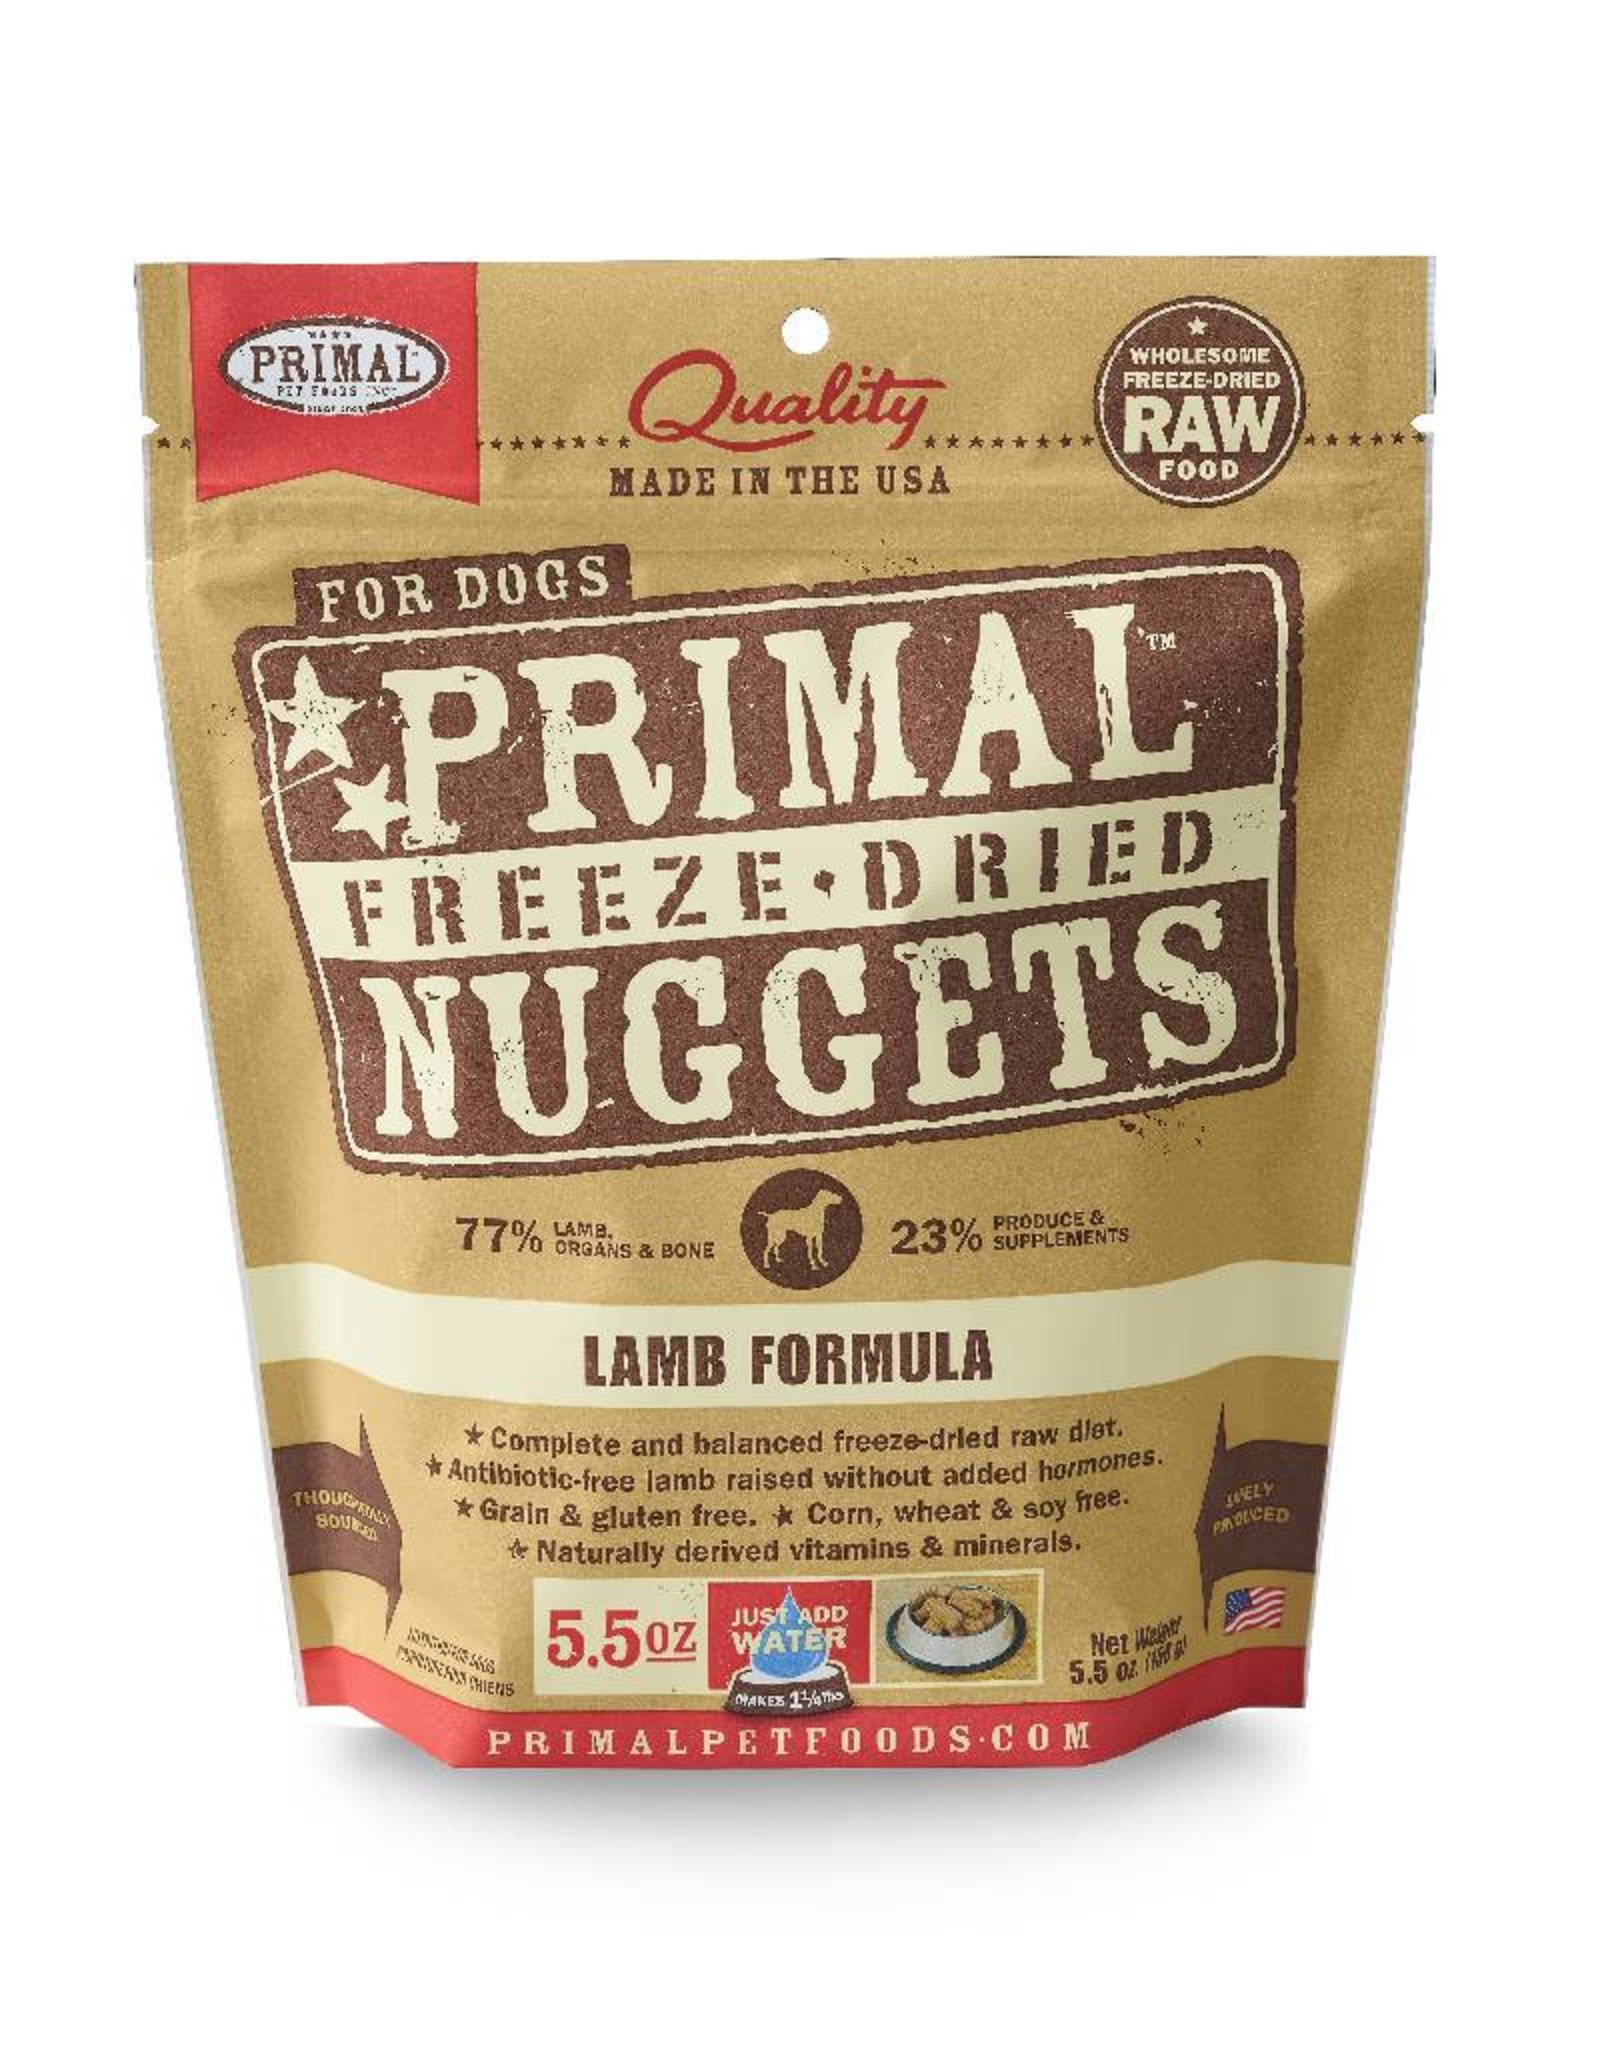 PRIMAL PET FOODS Primal | Freeze Dried Nuggets Canine Lamb Formula